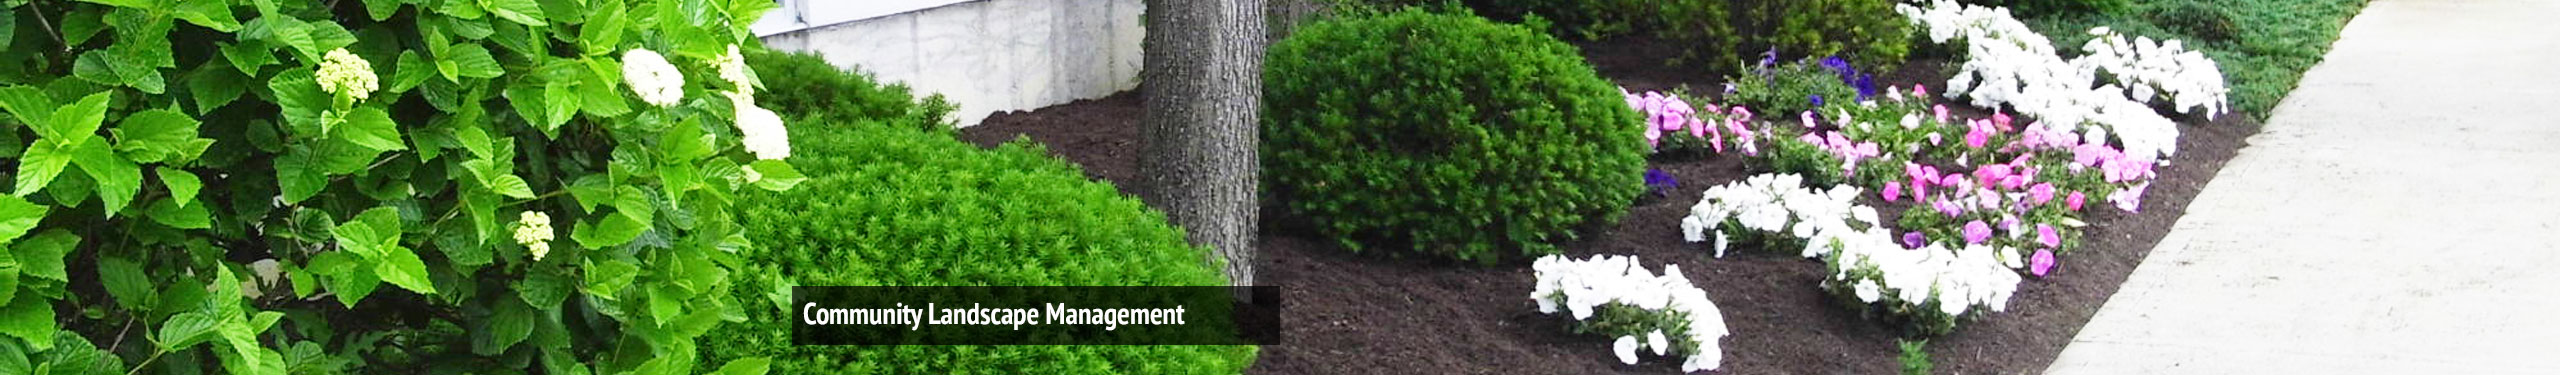 Community Landscape Management